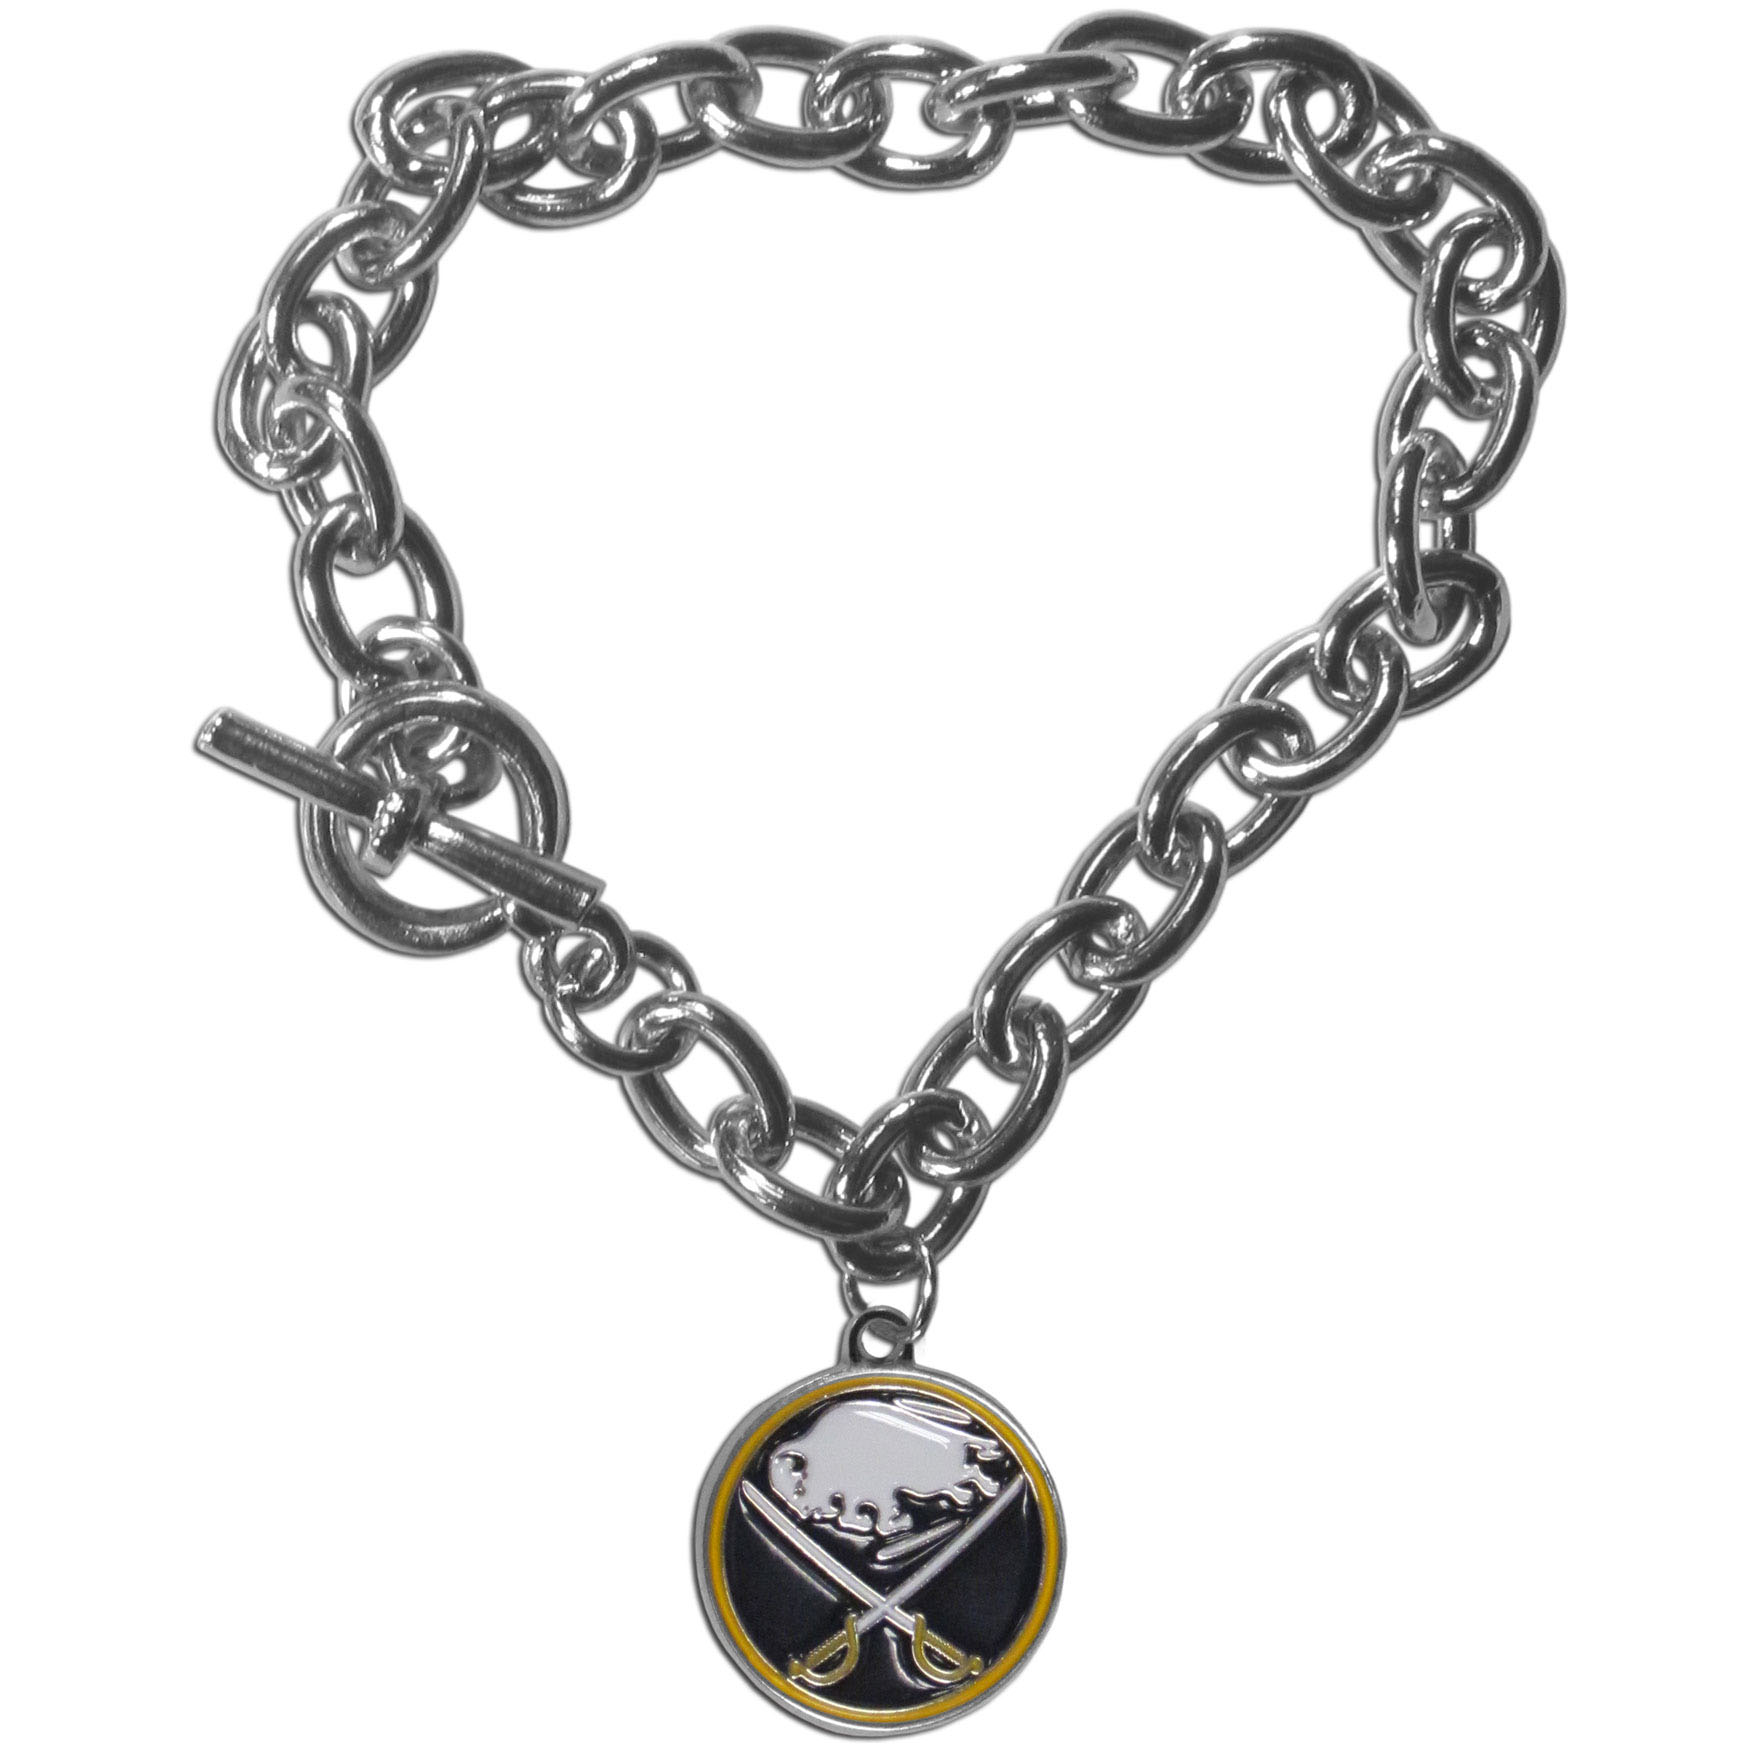 Buffalo Sabres® Charm Chain Bracelet - Our classic single charm bracelet is a great way to show off your team pride! The 7.5 inch large link chain features a high polish Buffalo Sabres® charm and features a toggle clasp which makes it super easy to take on and off.